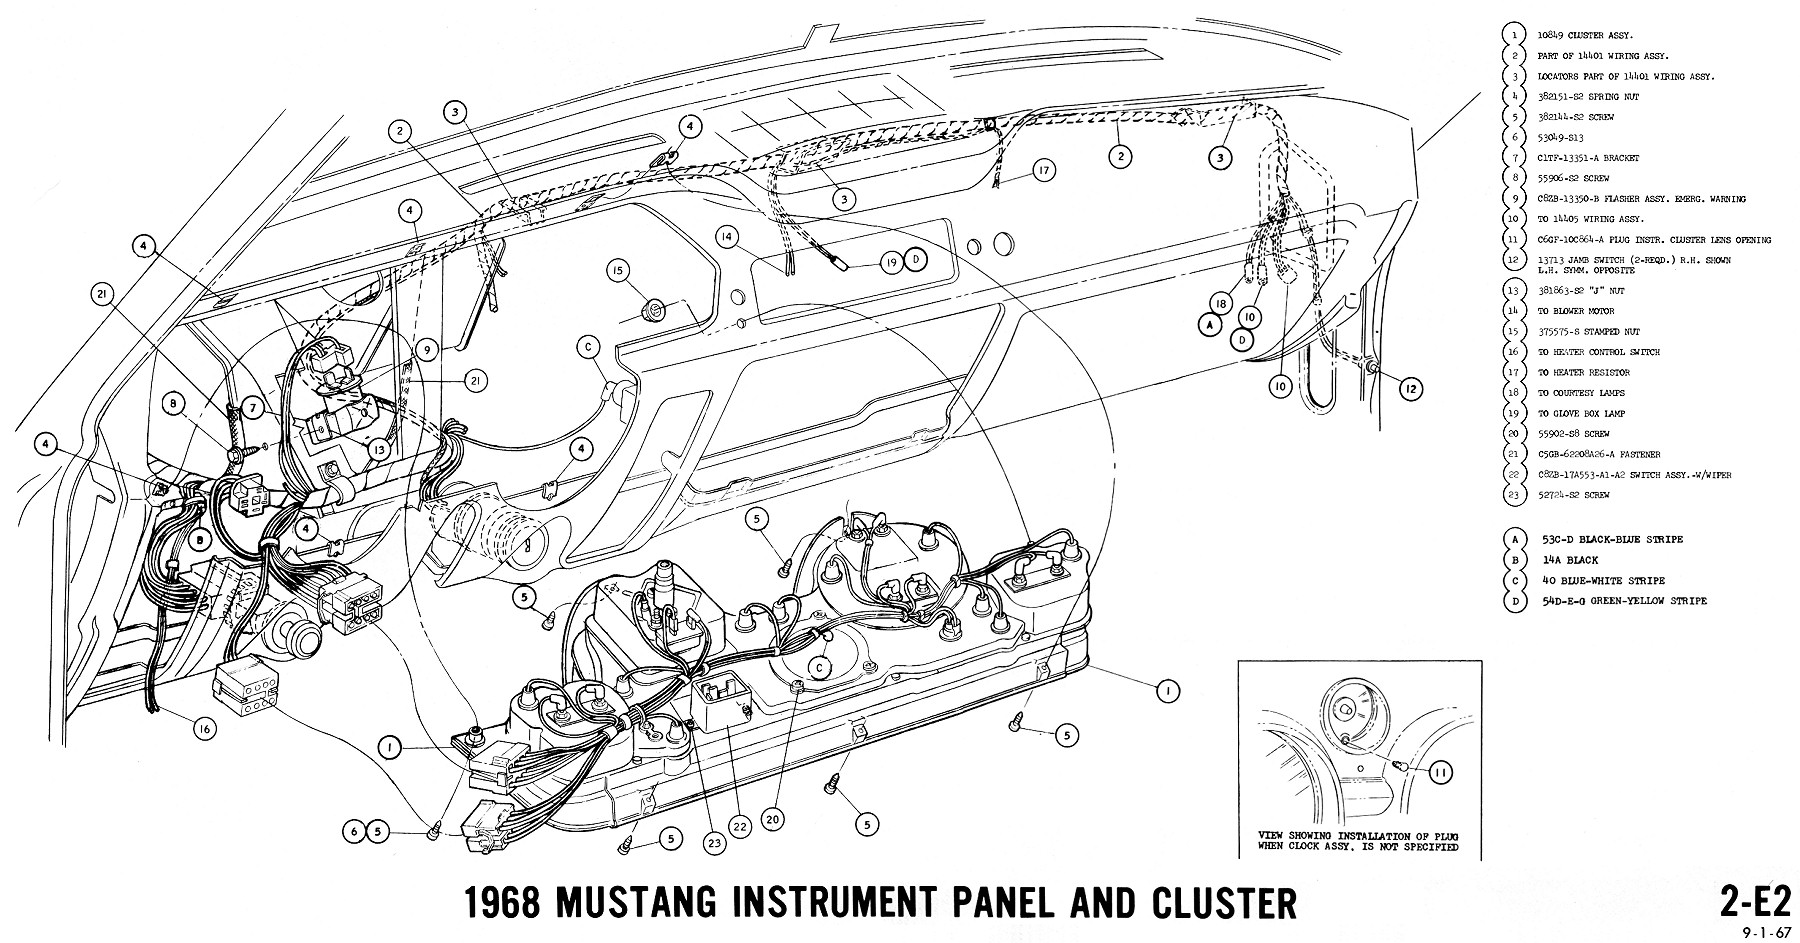 1968 mustang wiring diagrams and vacuum schematics average joe 1968 mustang wiring diagram manual at 68 Mustang Wiring Diagram